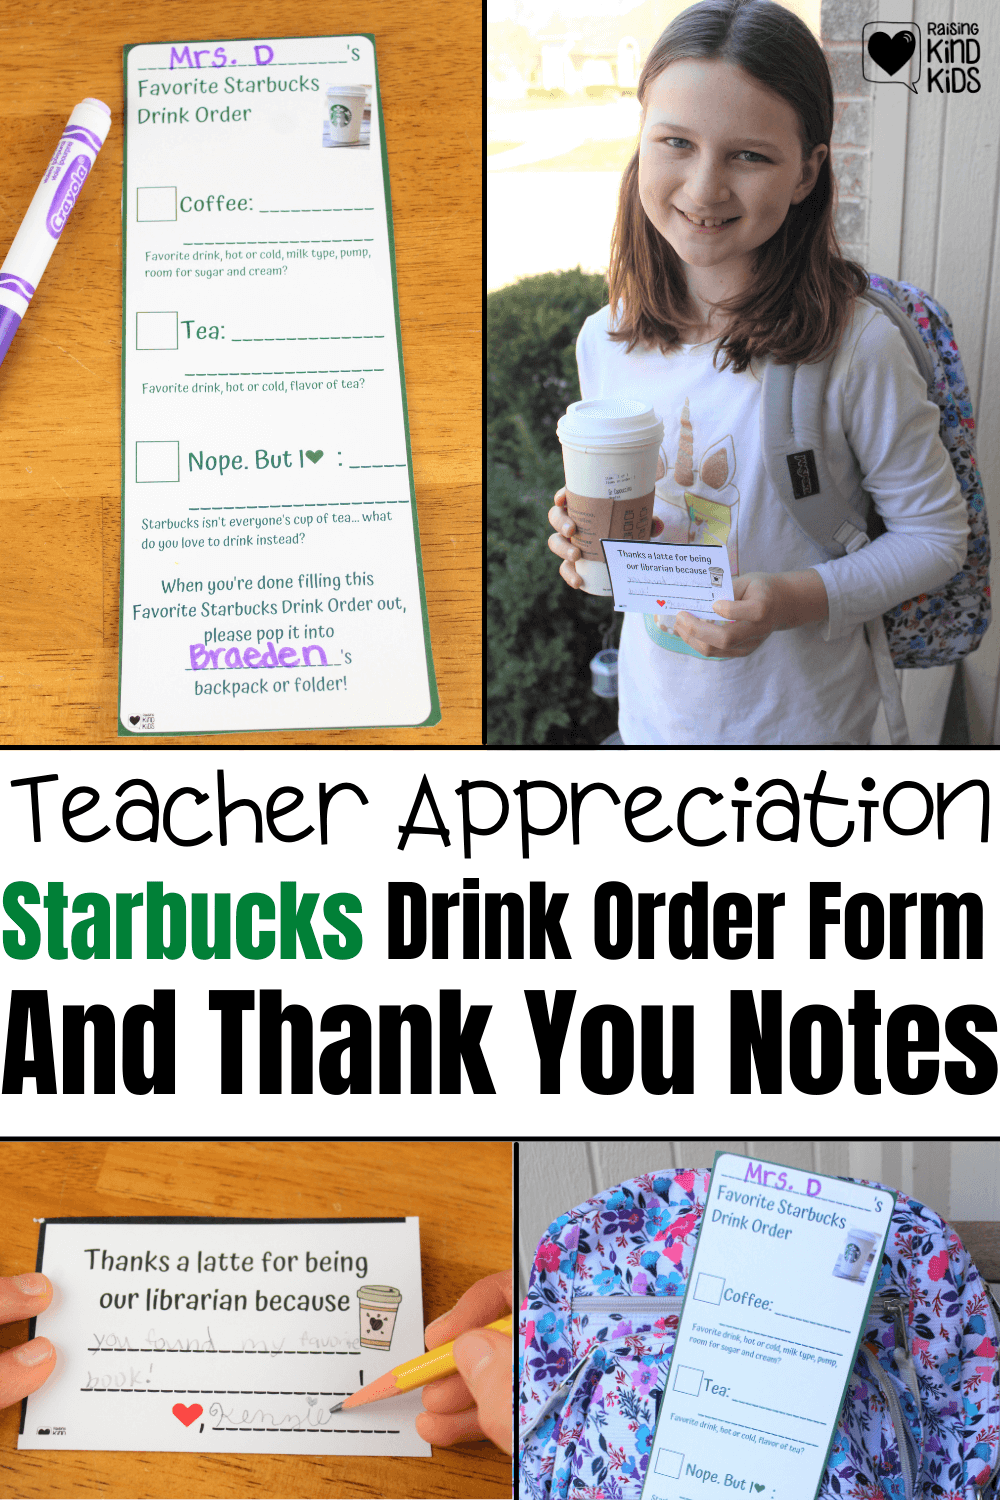 Celebrate Teachers and thank them with this Starbcuks Drink Order Form and Thank you notes to appreciate our school staff.